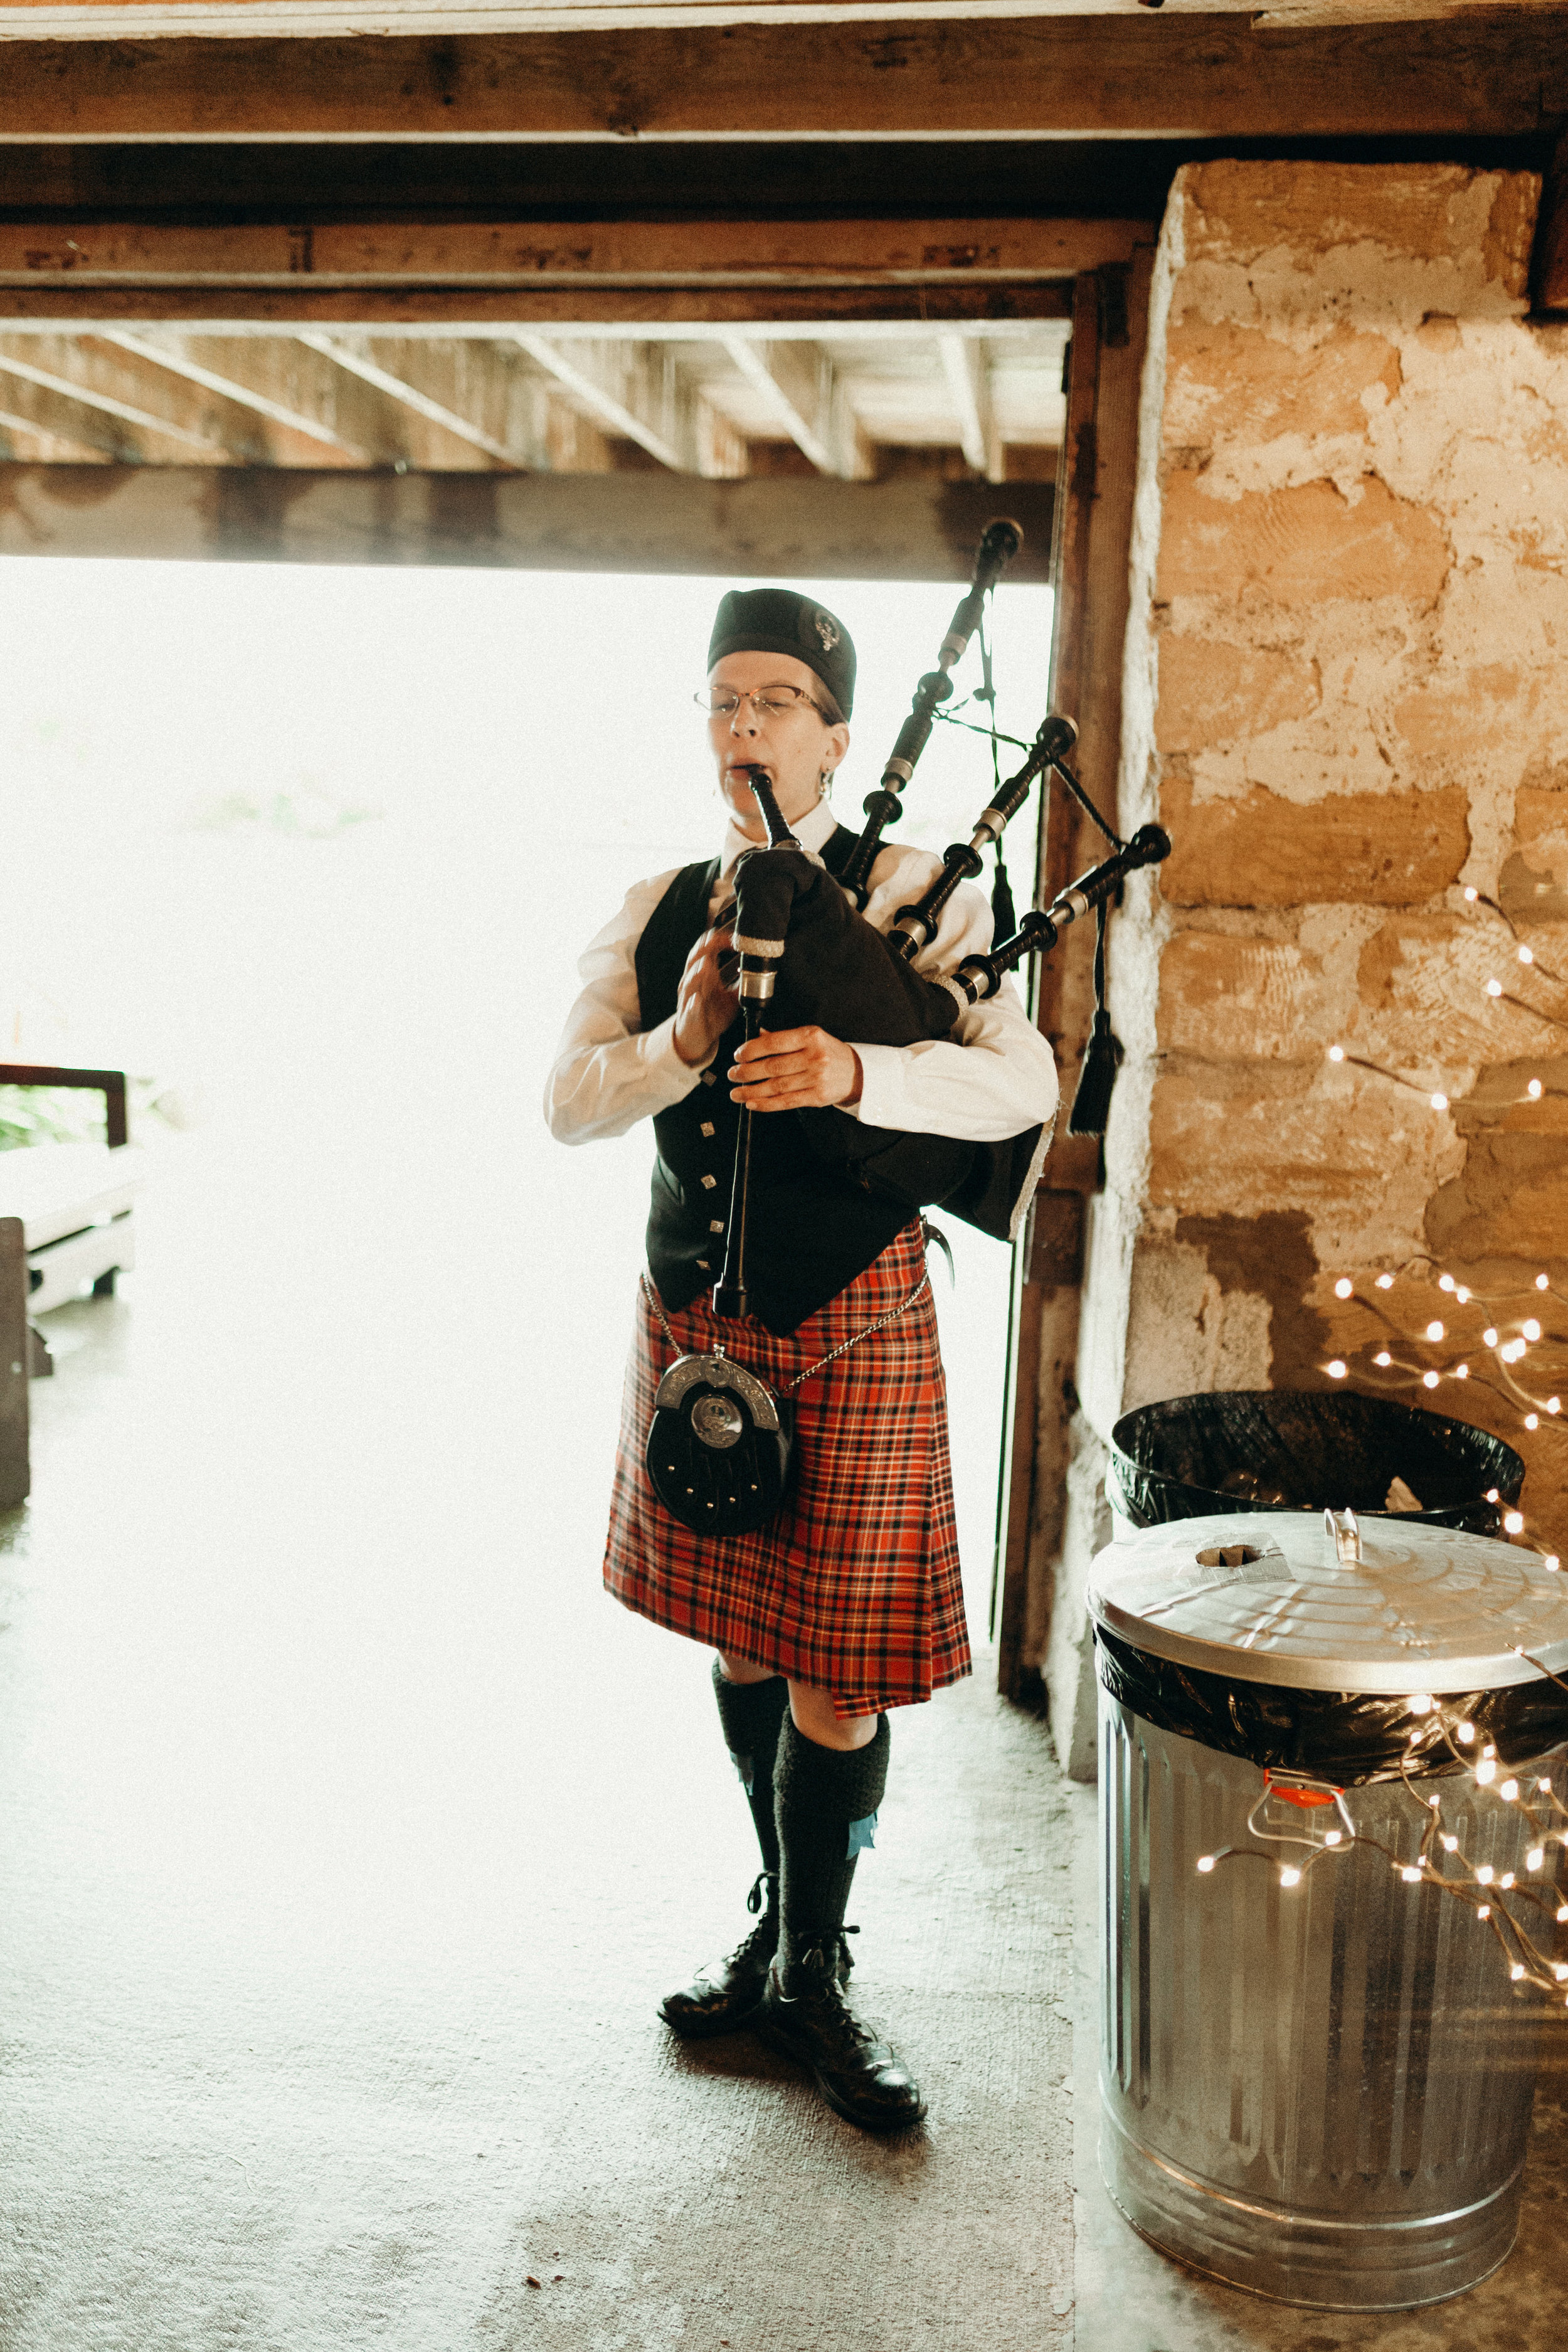 Bag pipes performer at the wedding ceremony